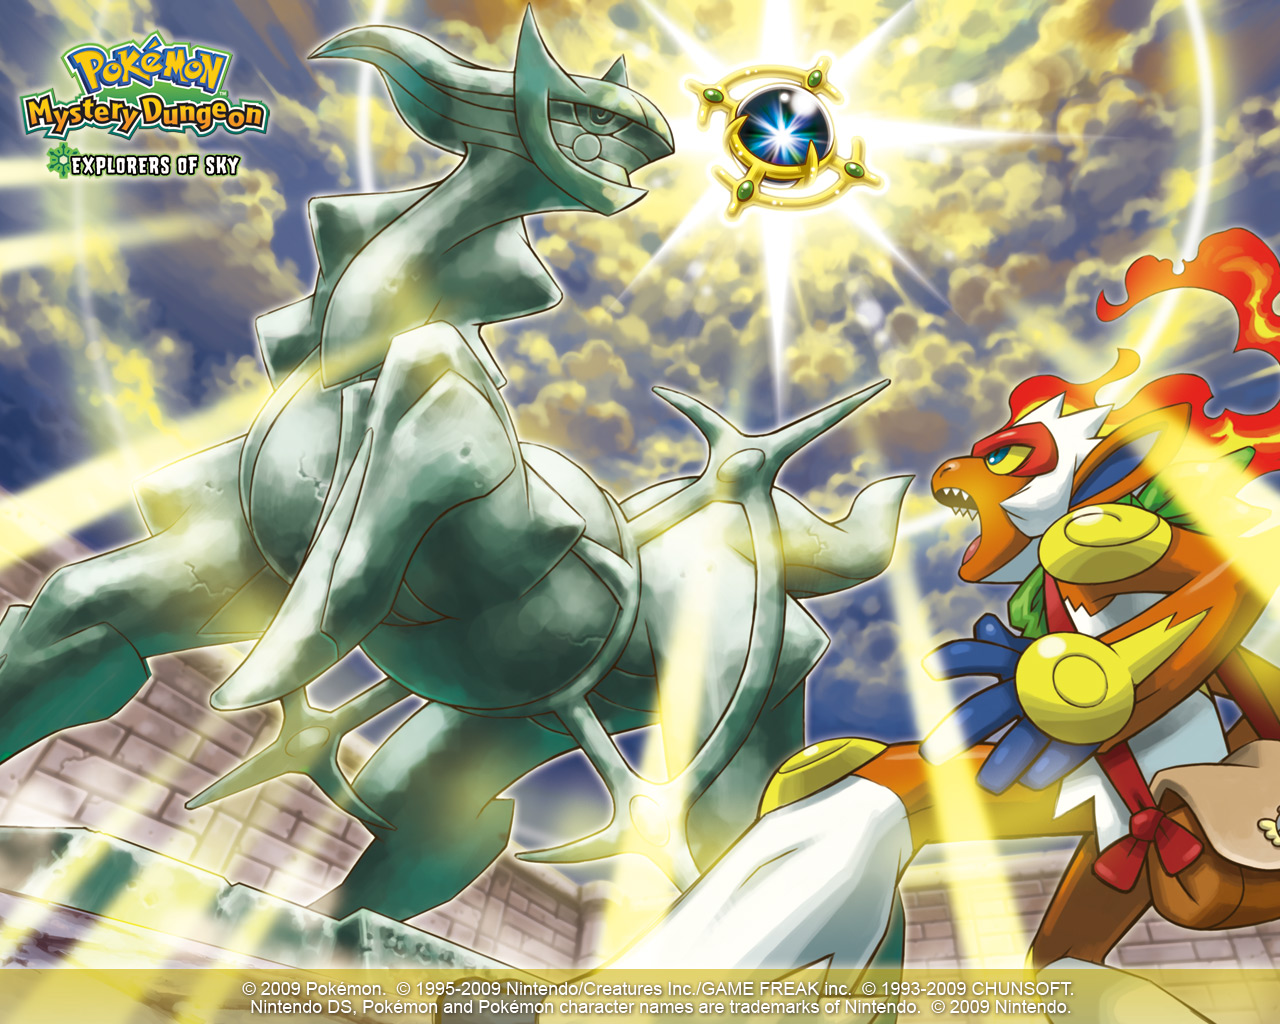 77 Pokemon Mystery Dungeon Wallpaper On Wallpapersafari